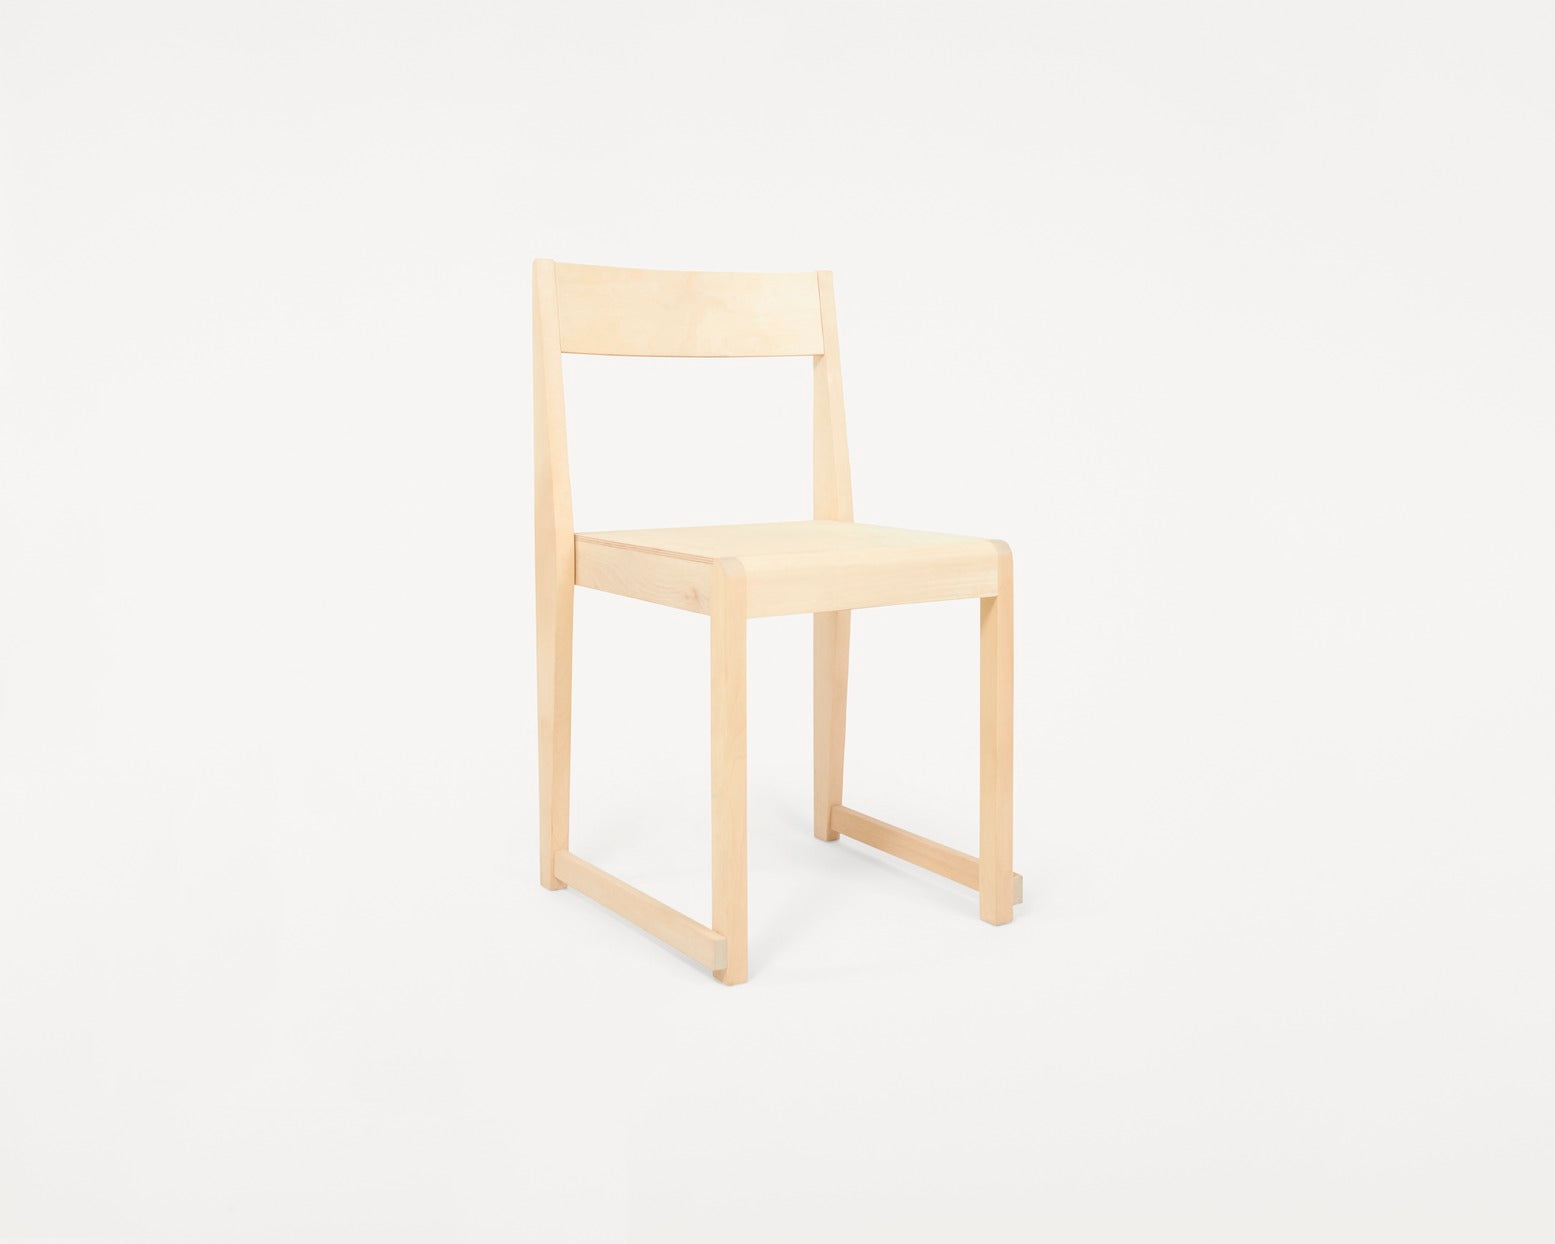 Chair 01 | Natural Wood Frame